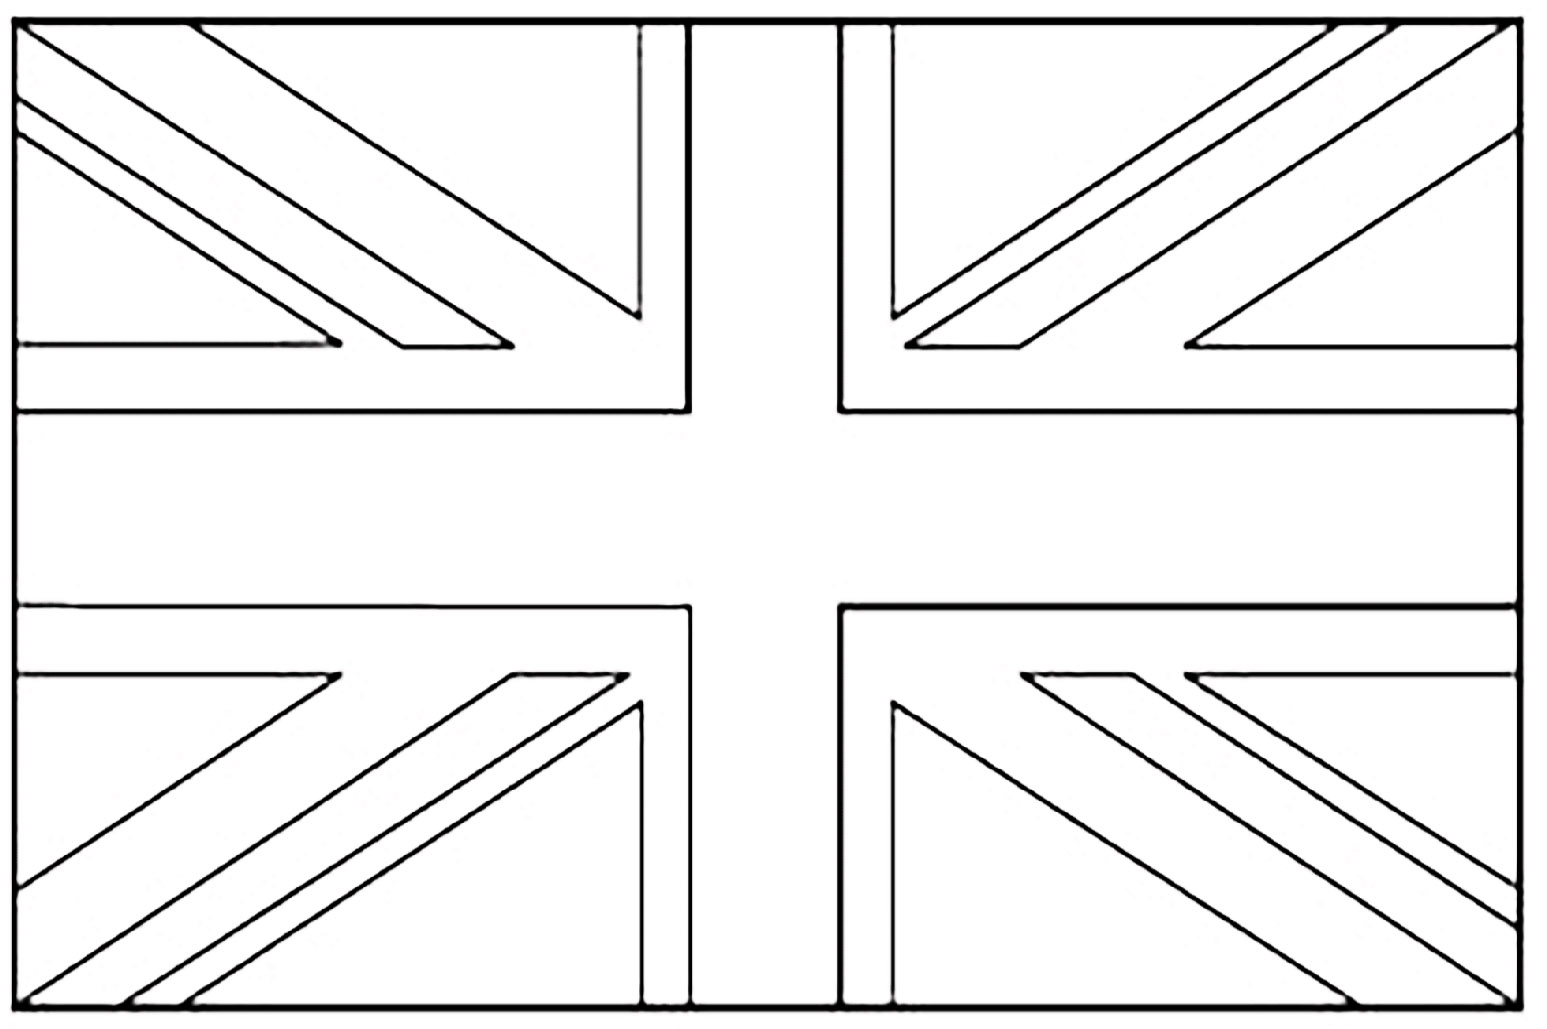 United Kingdom Union Jack Flags Coloring Pages For Kids